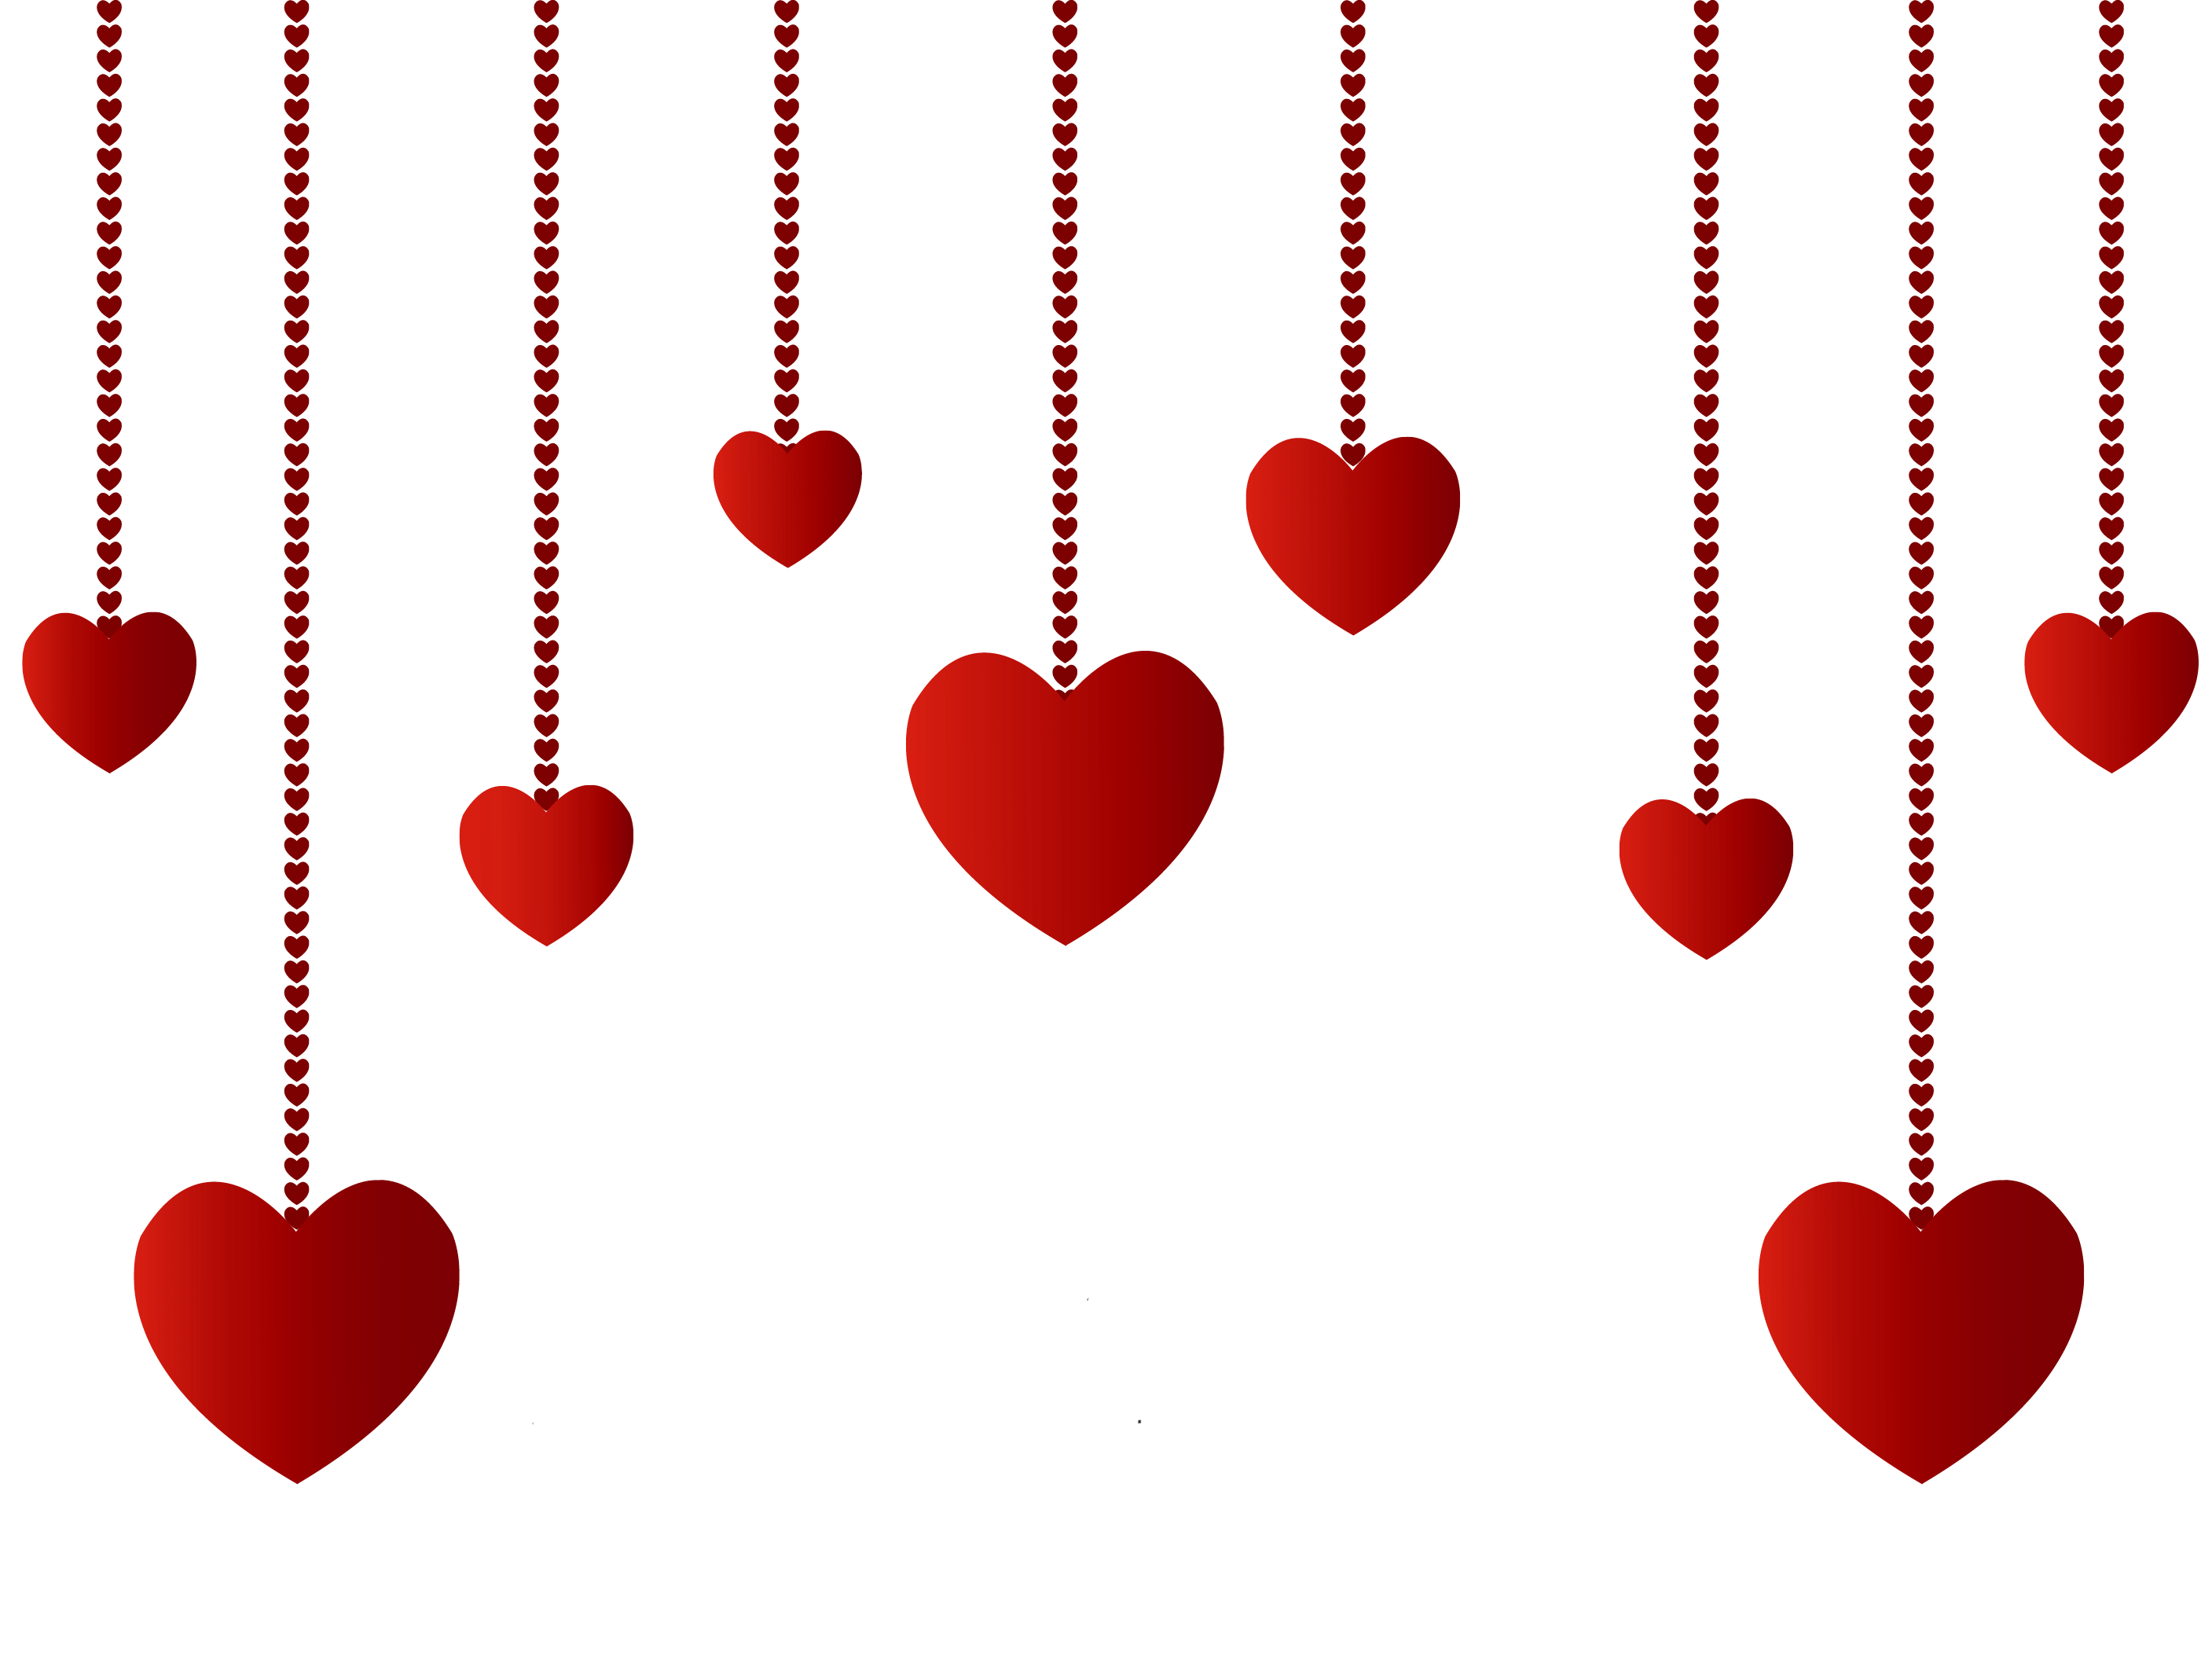 Red Hanging Hearts and Dots Decor PNG Clipart.